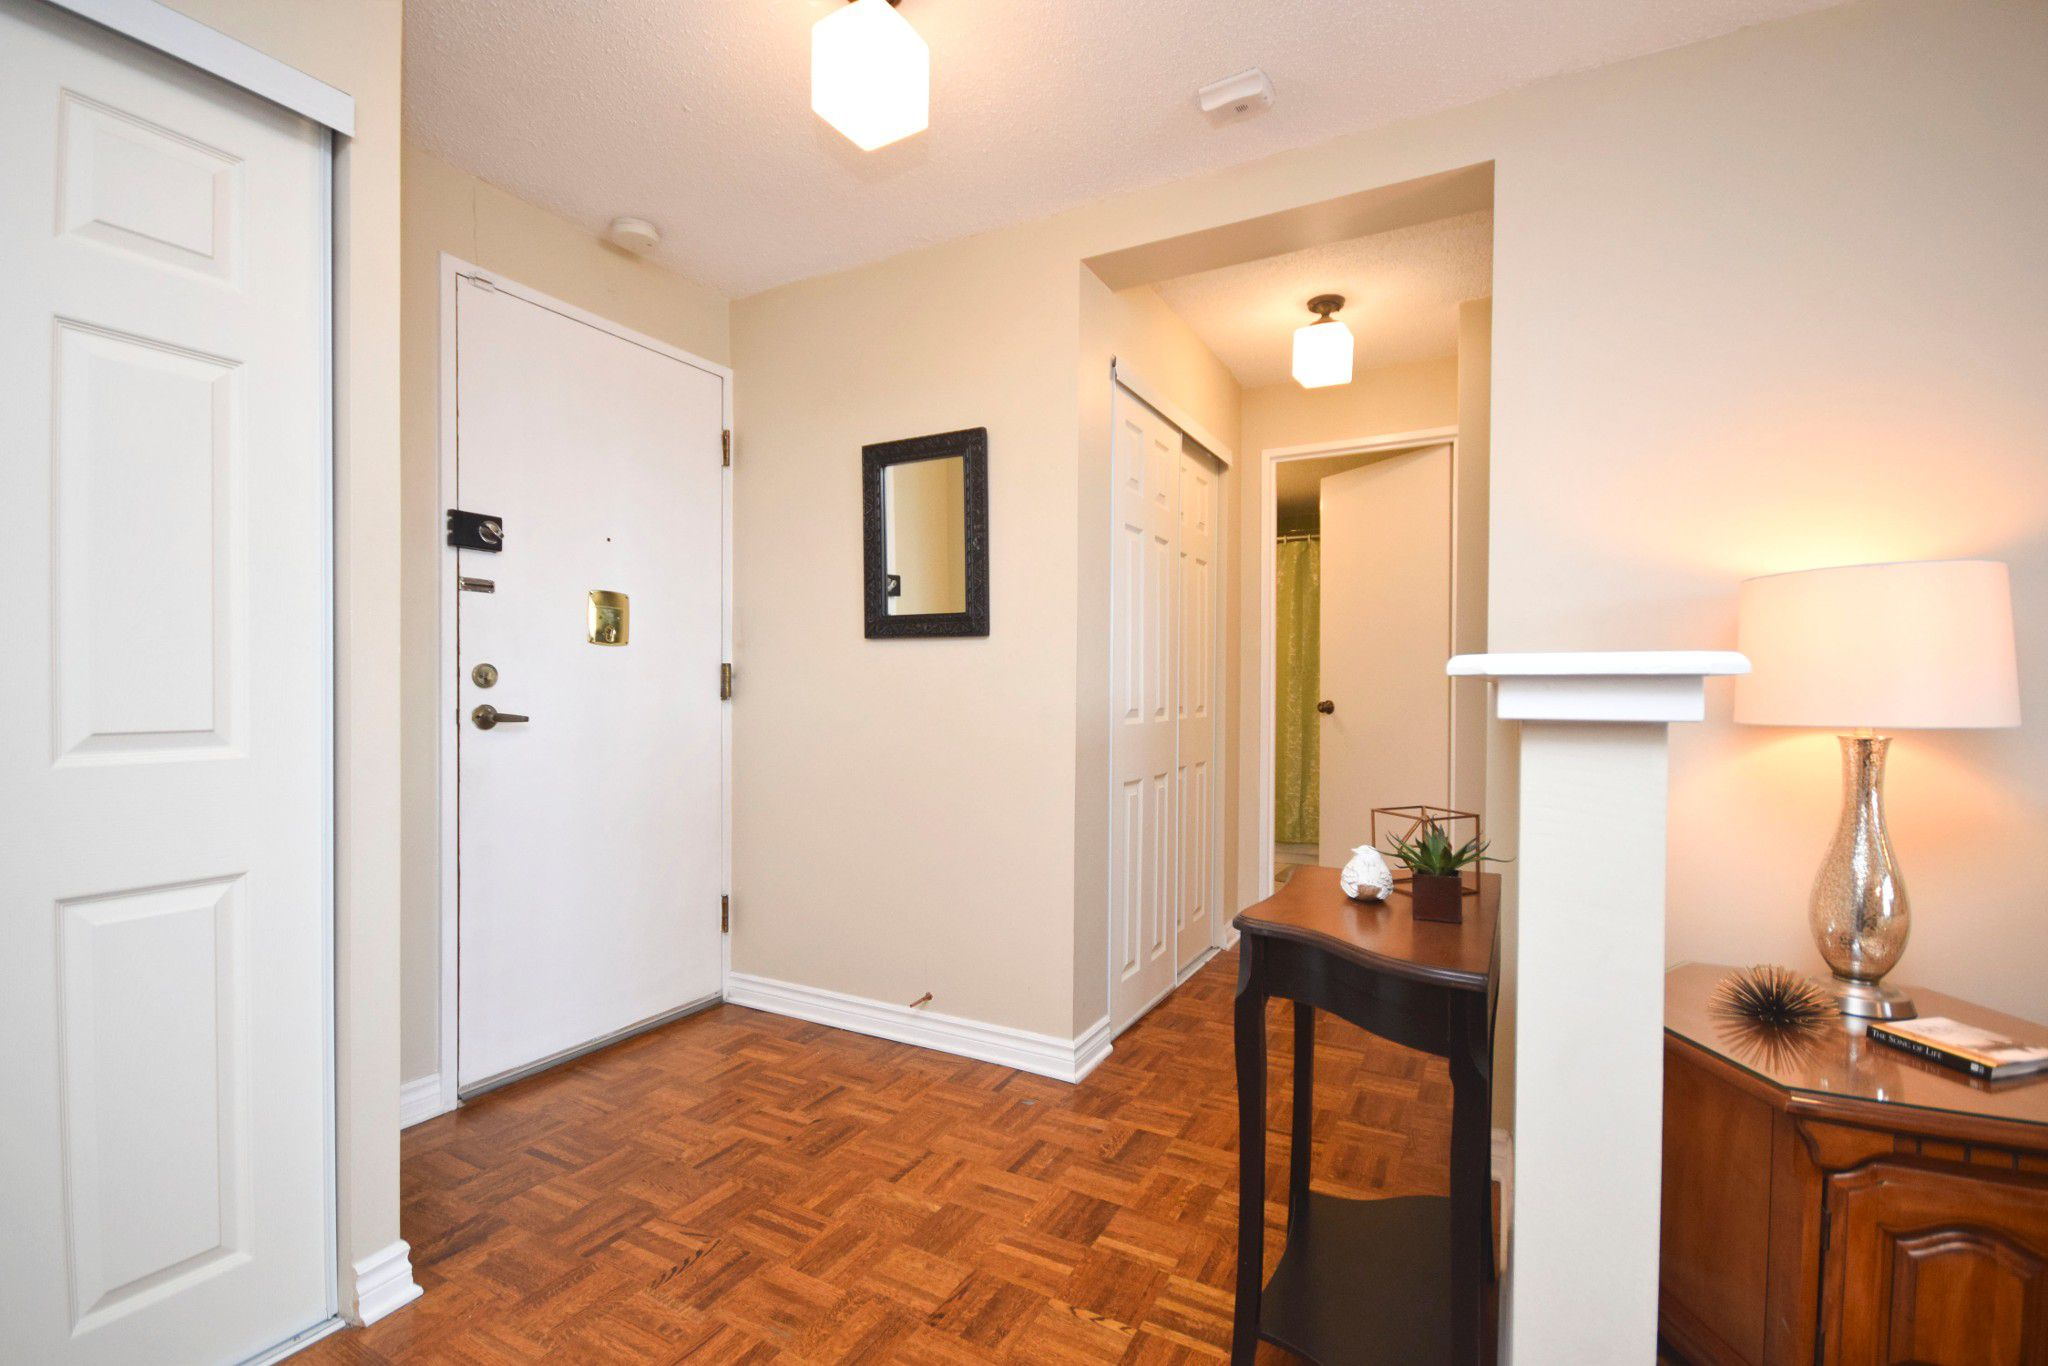 Photo 8: Photos: 515 1465 BASELINE Road in Ottawa: Copeland Park House for sale : MLS®# 1133550